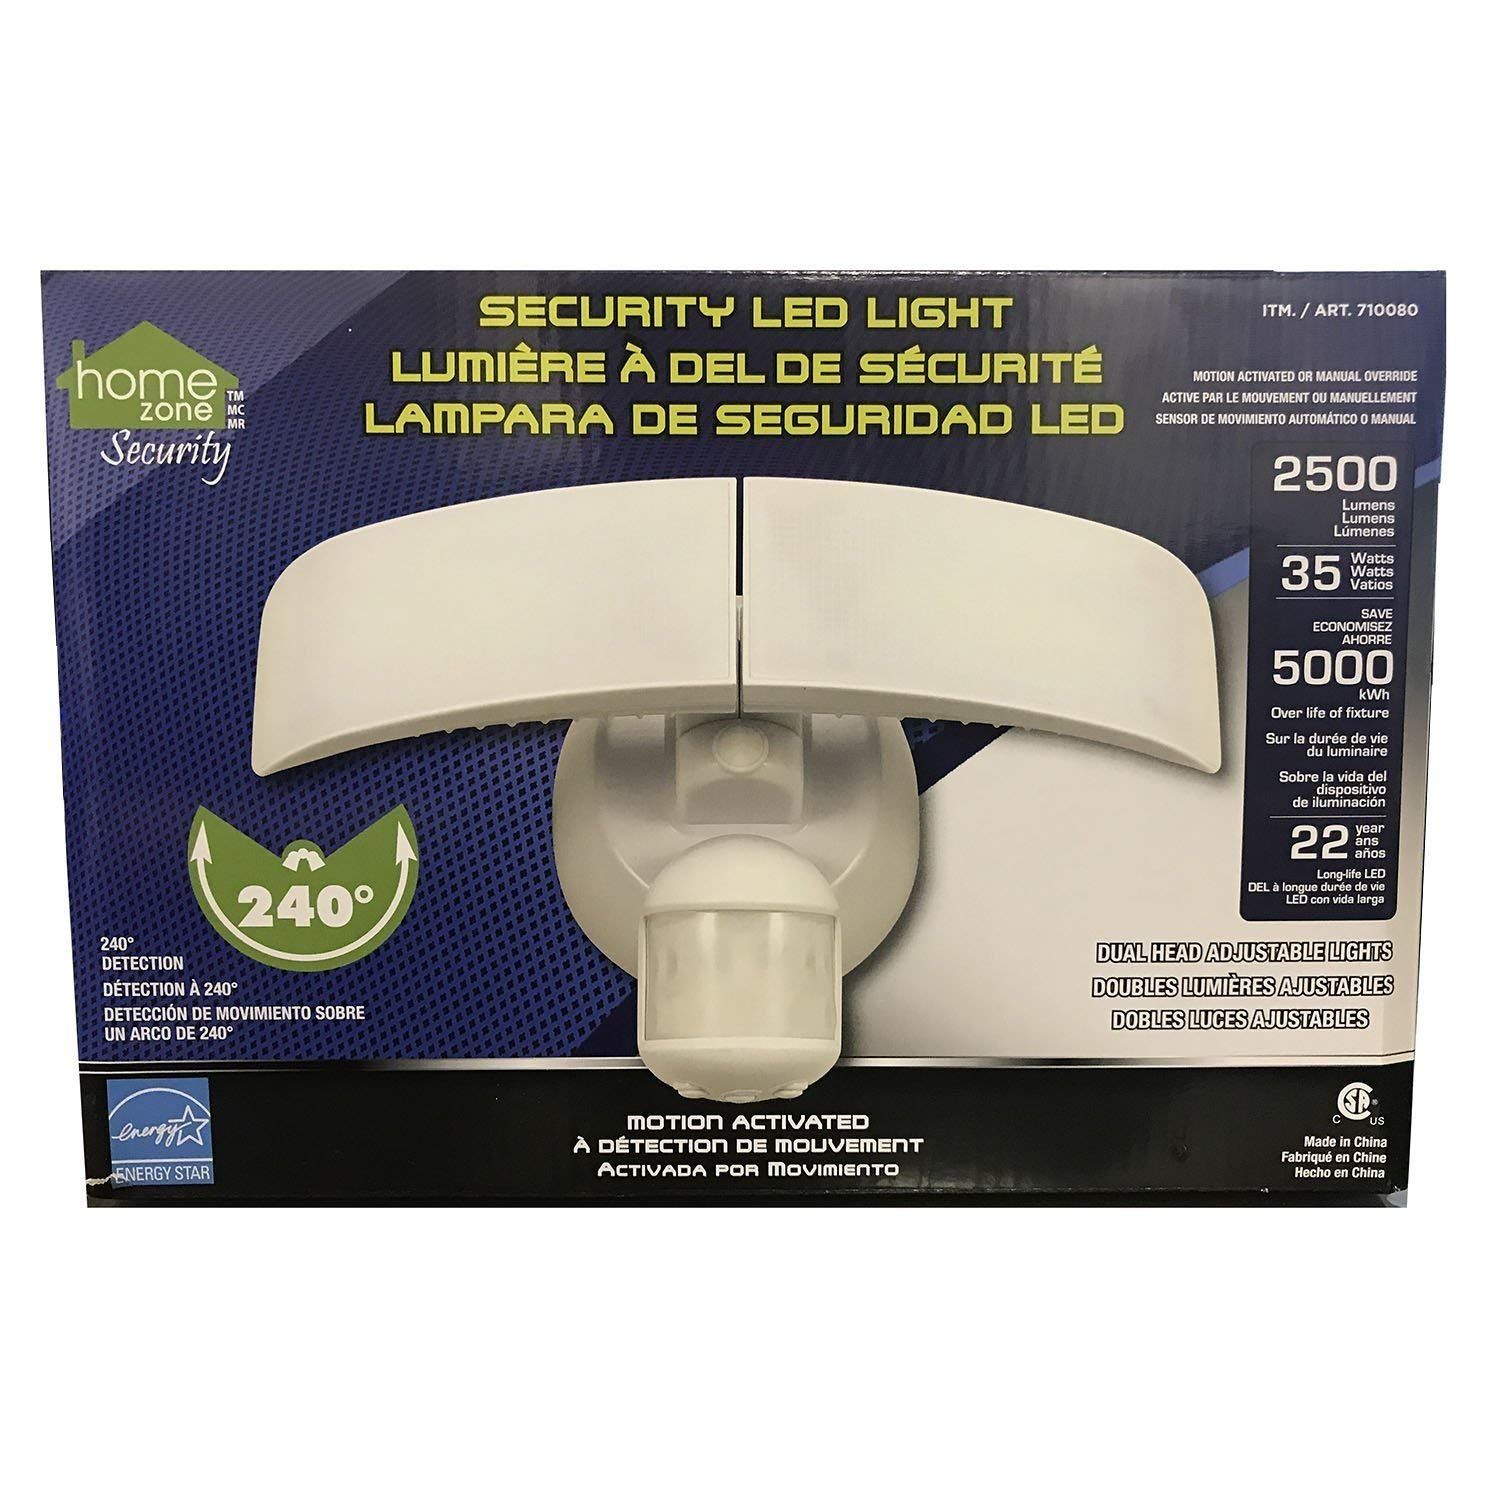 Home Zone Motion Activated LED Security Light - 2500 Lumens 35 Watts (Daylight) - - Amazon.com